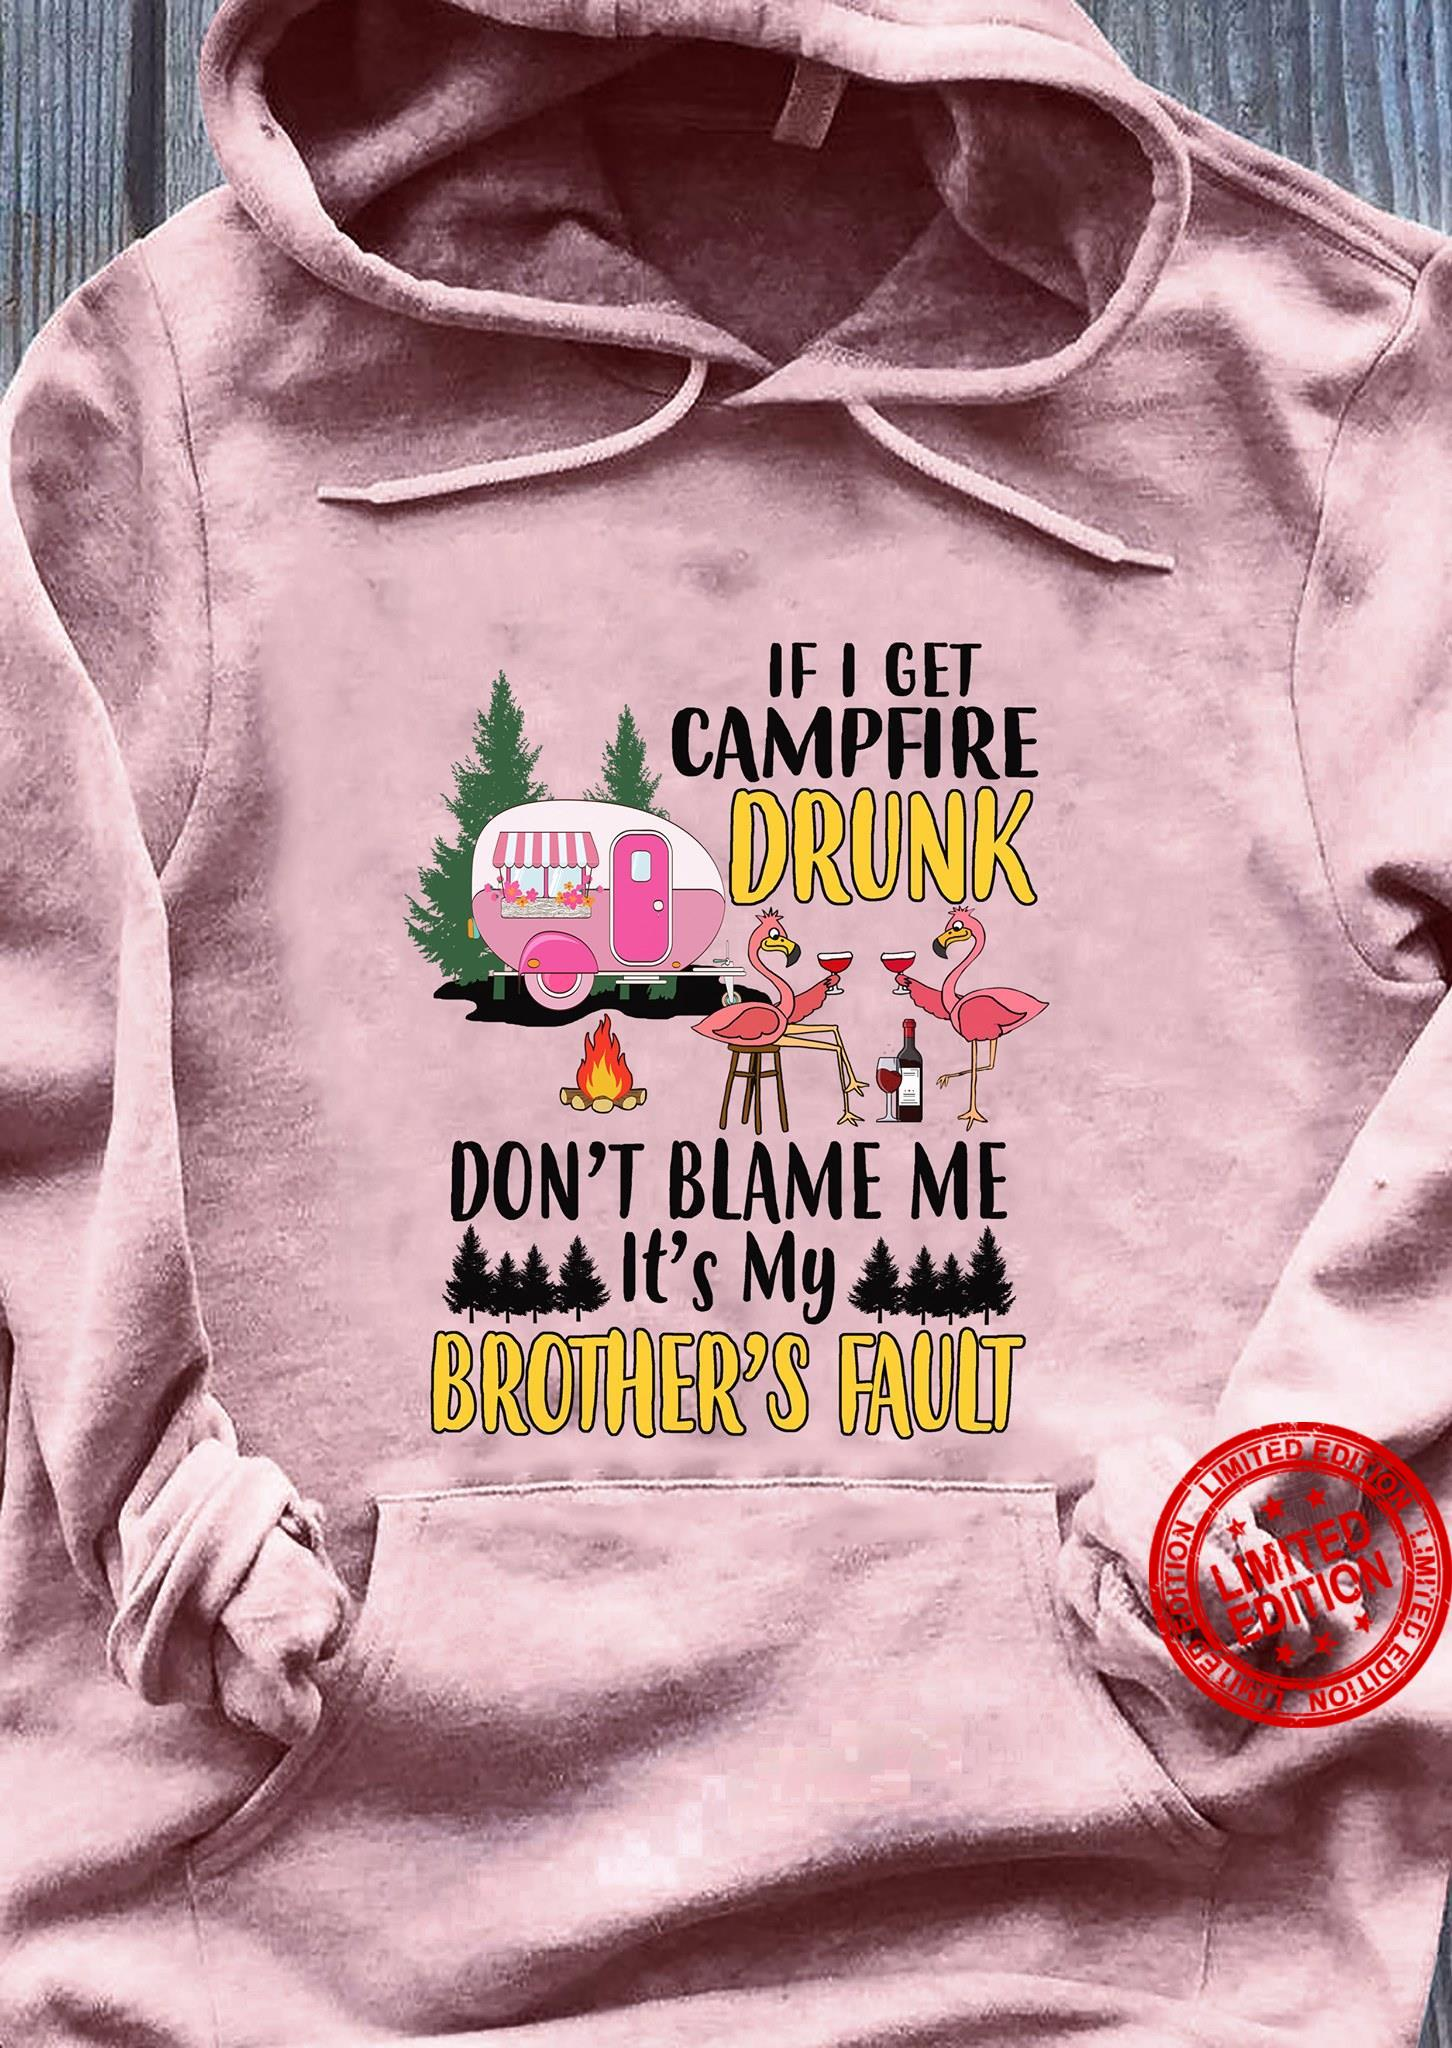 If I get Campfire Drunk Don't Blame Me It's My Brother's Fault Shirt